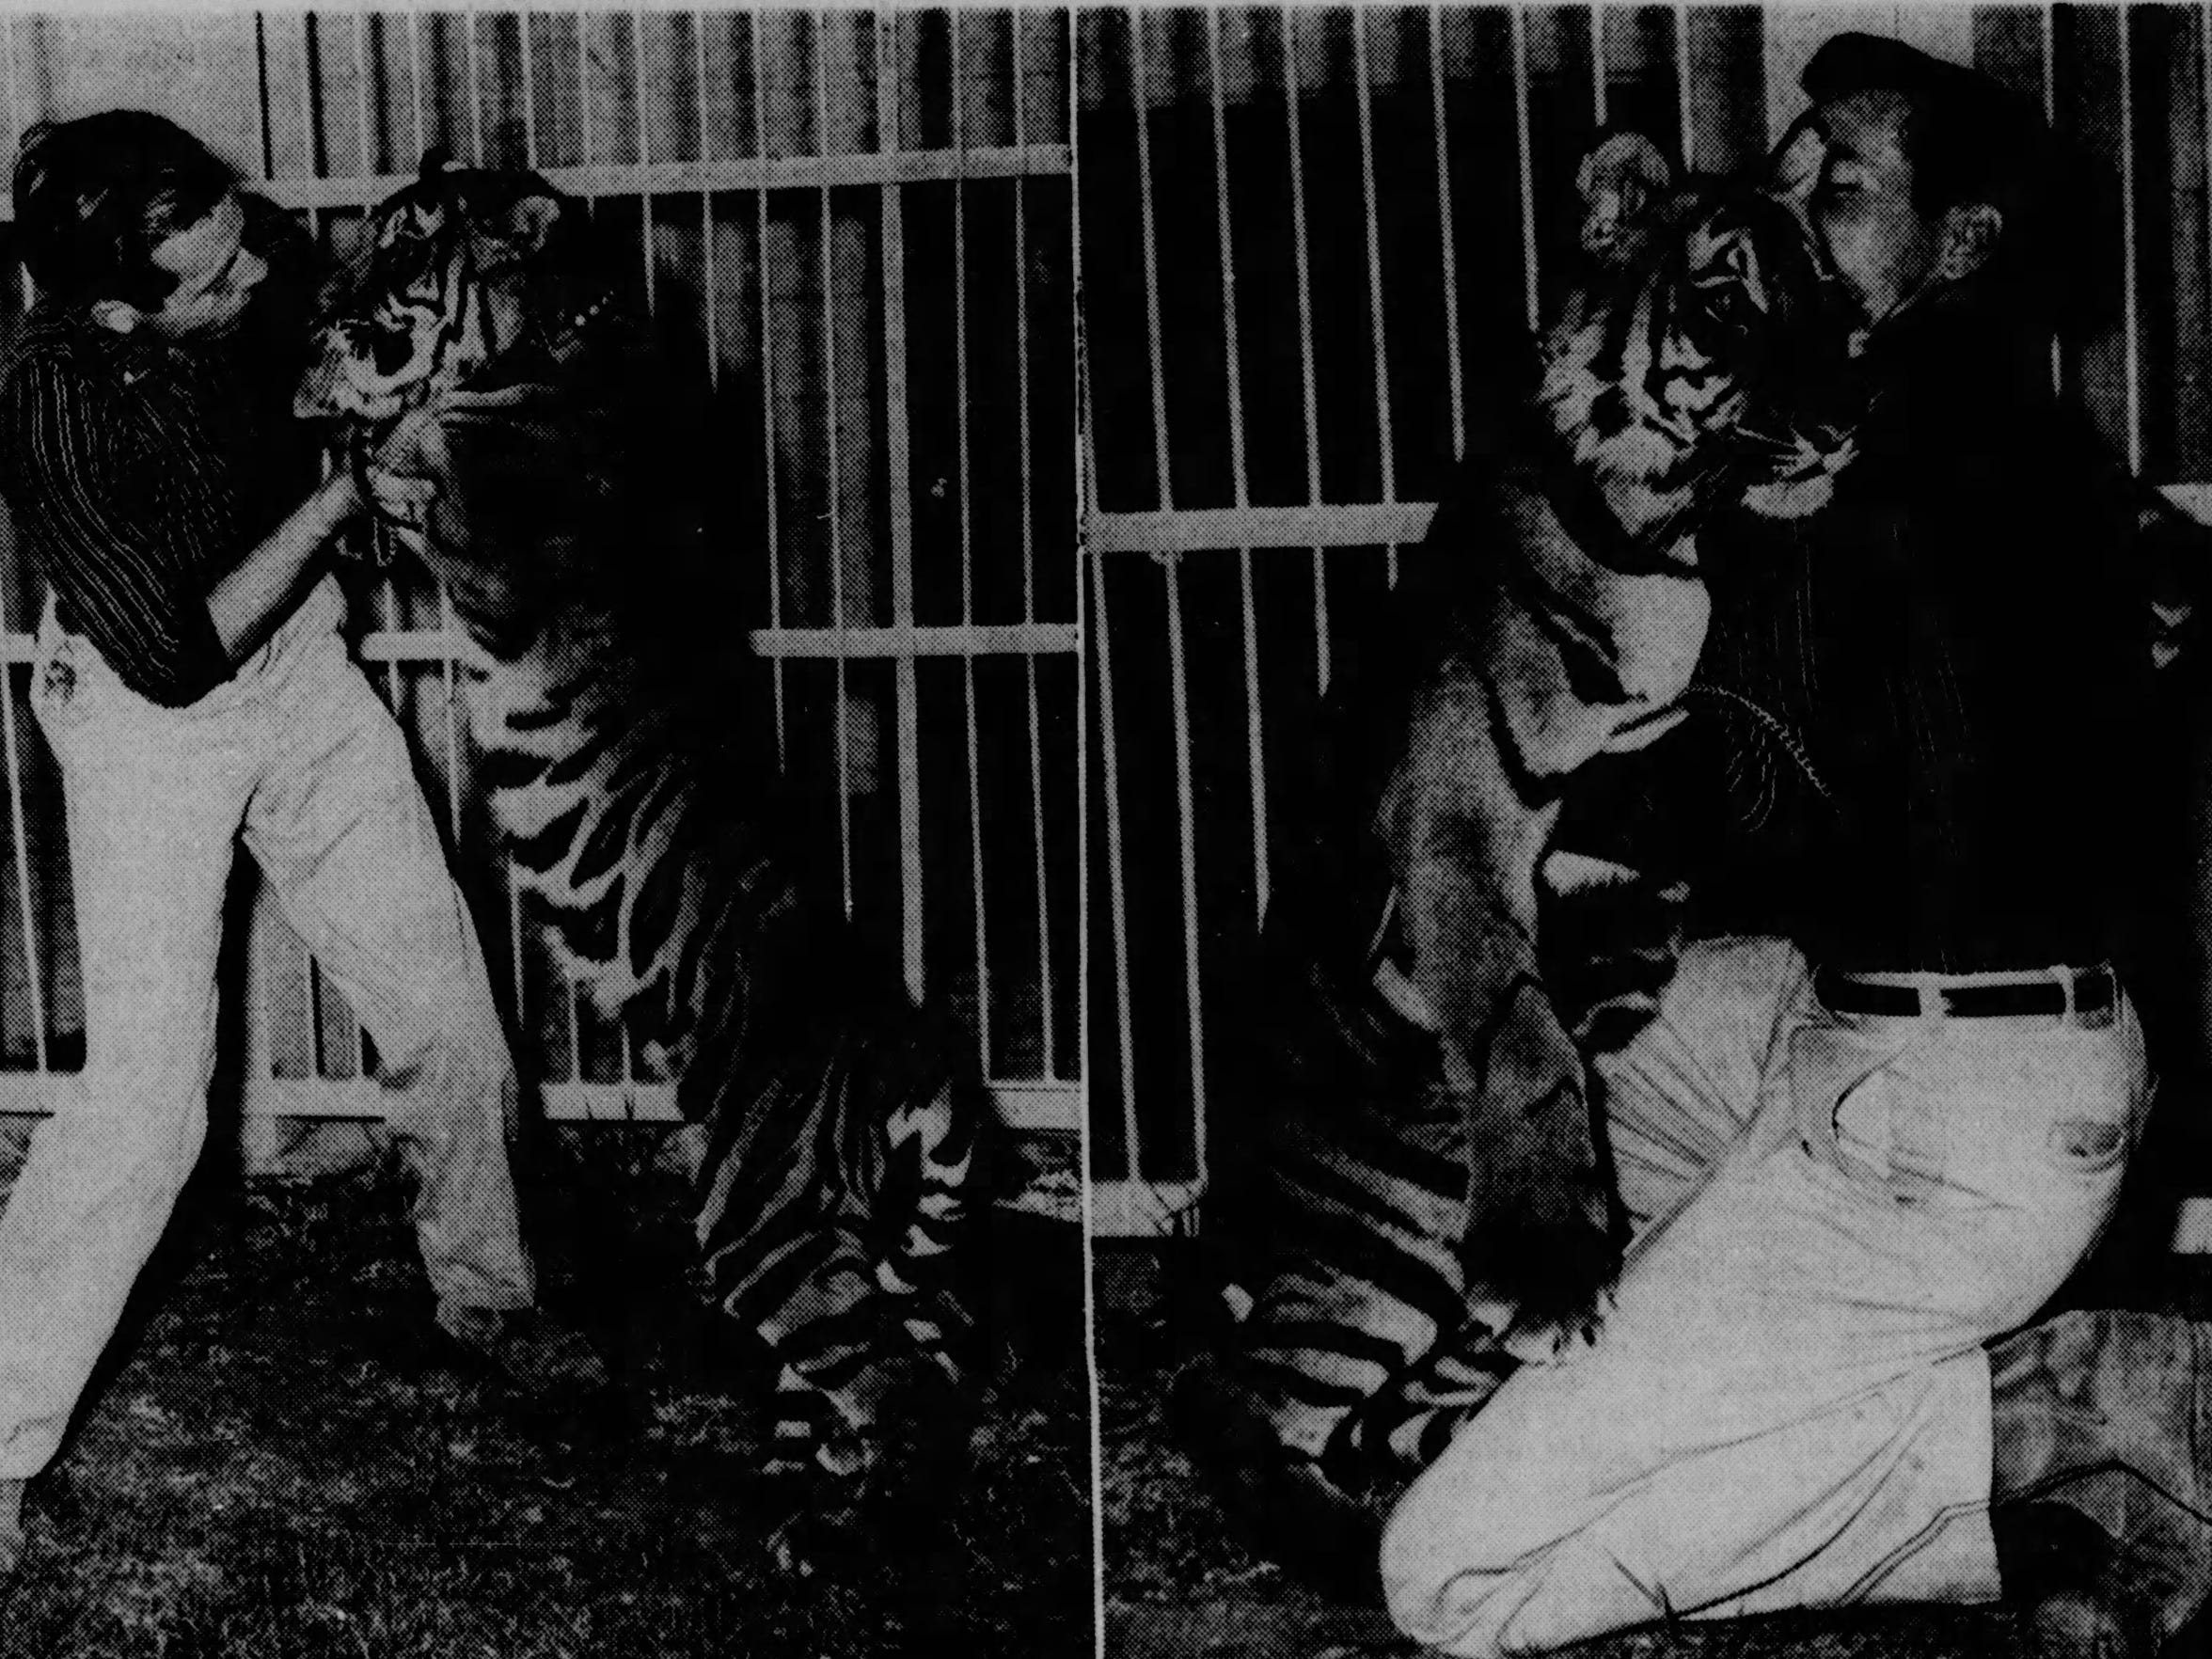 Kit Beecher, then director of Bernstein Park Zoo, plays